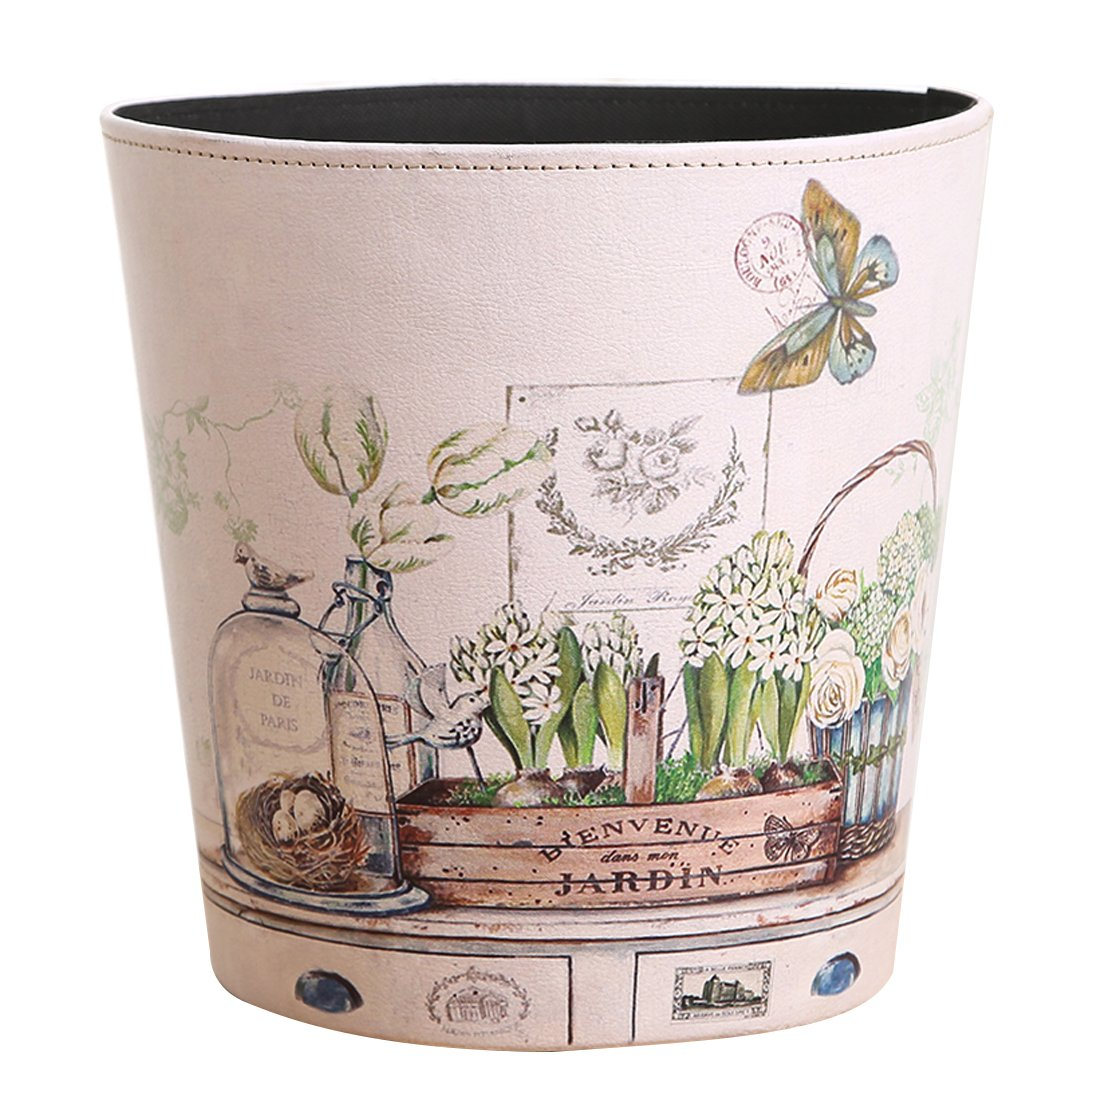 Bedroom Bin, Foxom Retro PU Leather Waste Paper Bin Wastebasket Trash Can Dustbin Garbage Bin for Bedroom, Living Room, Kitchen, Office (Butterfly Pattern)